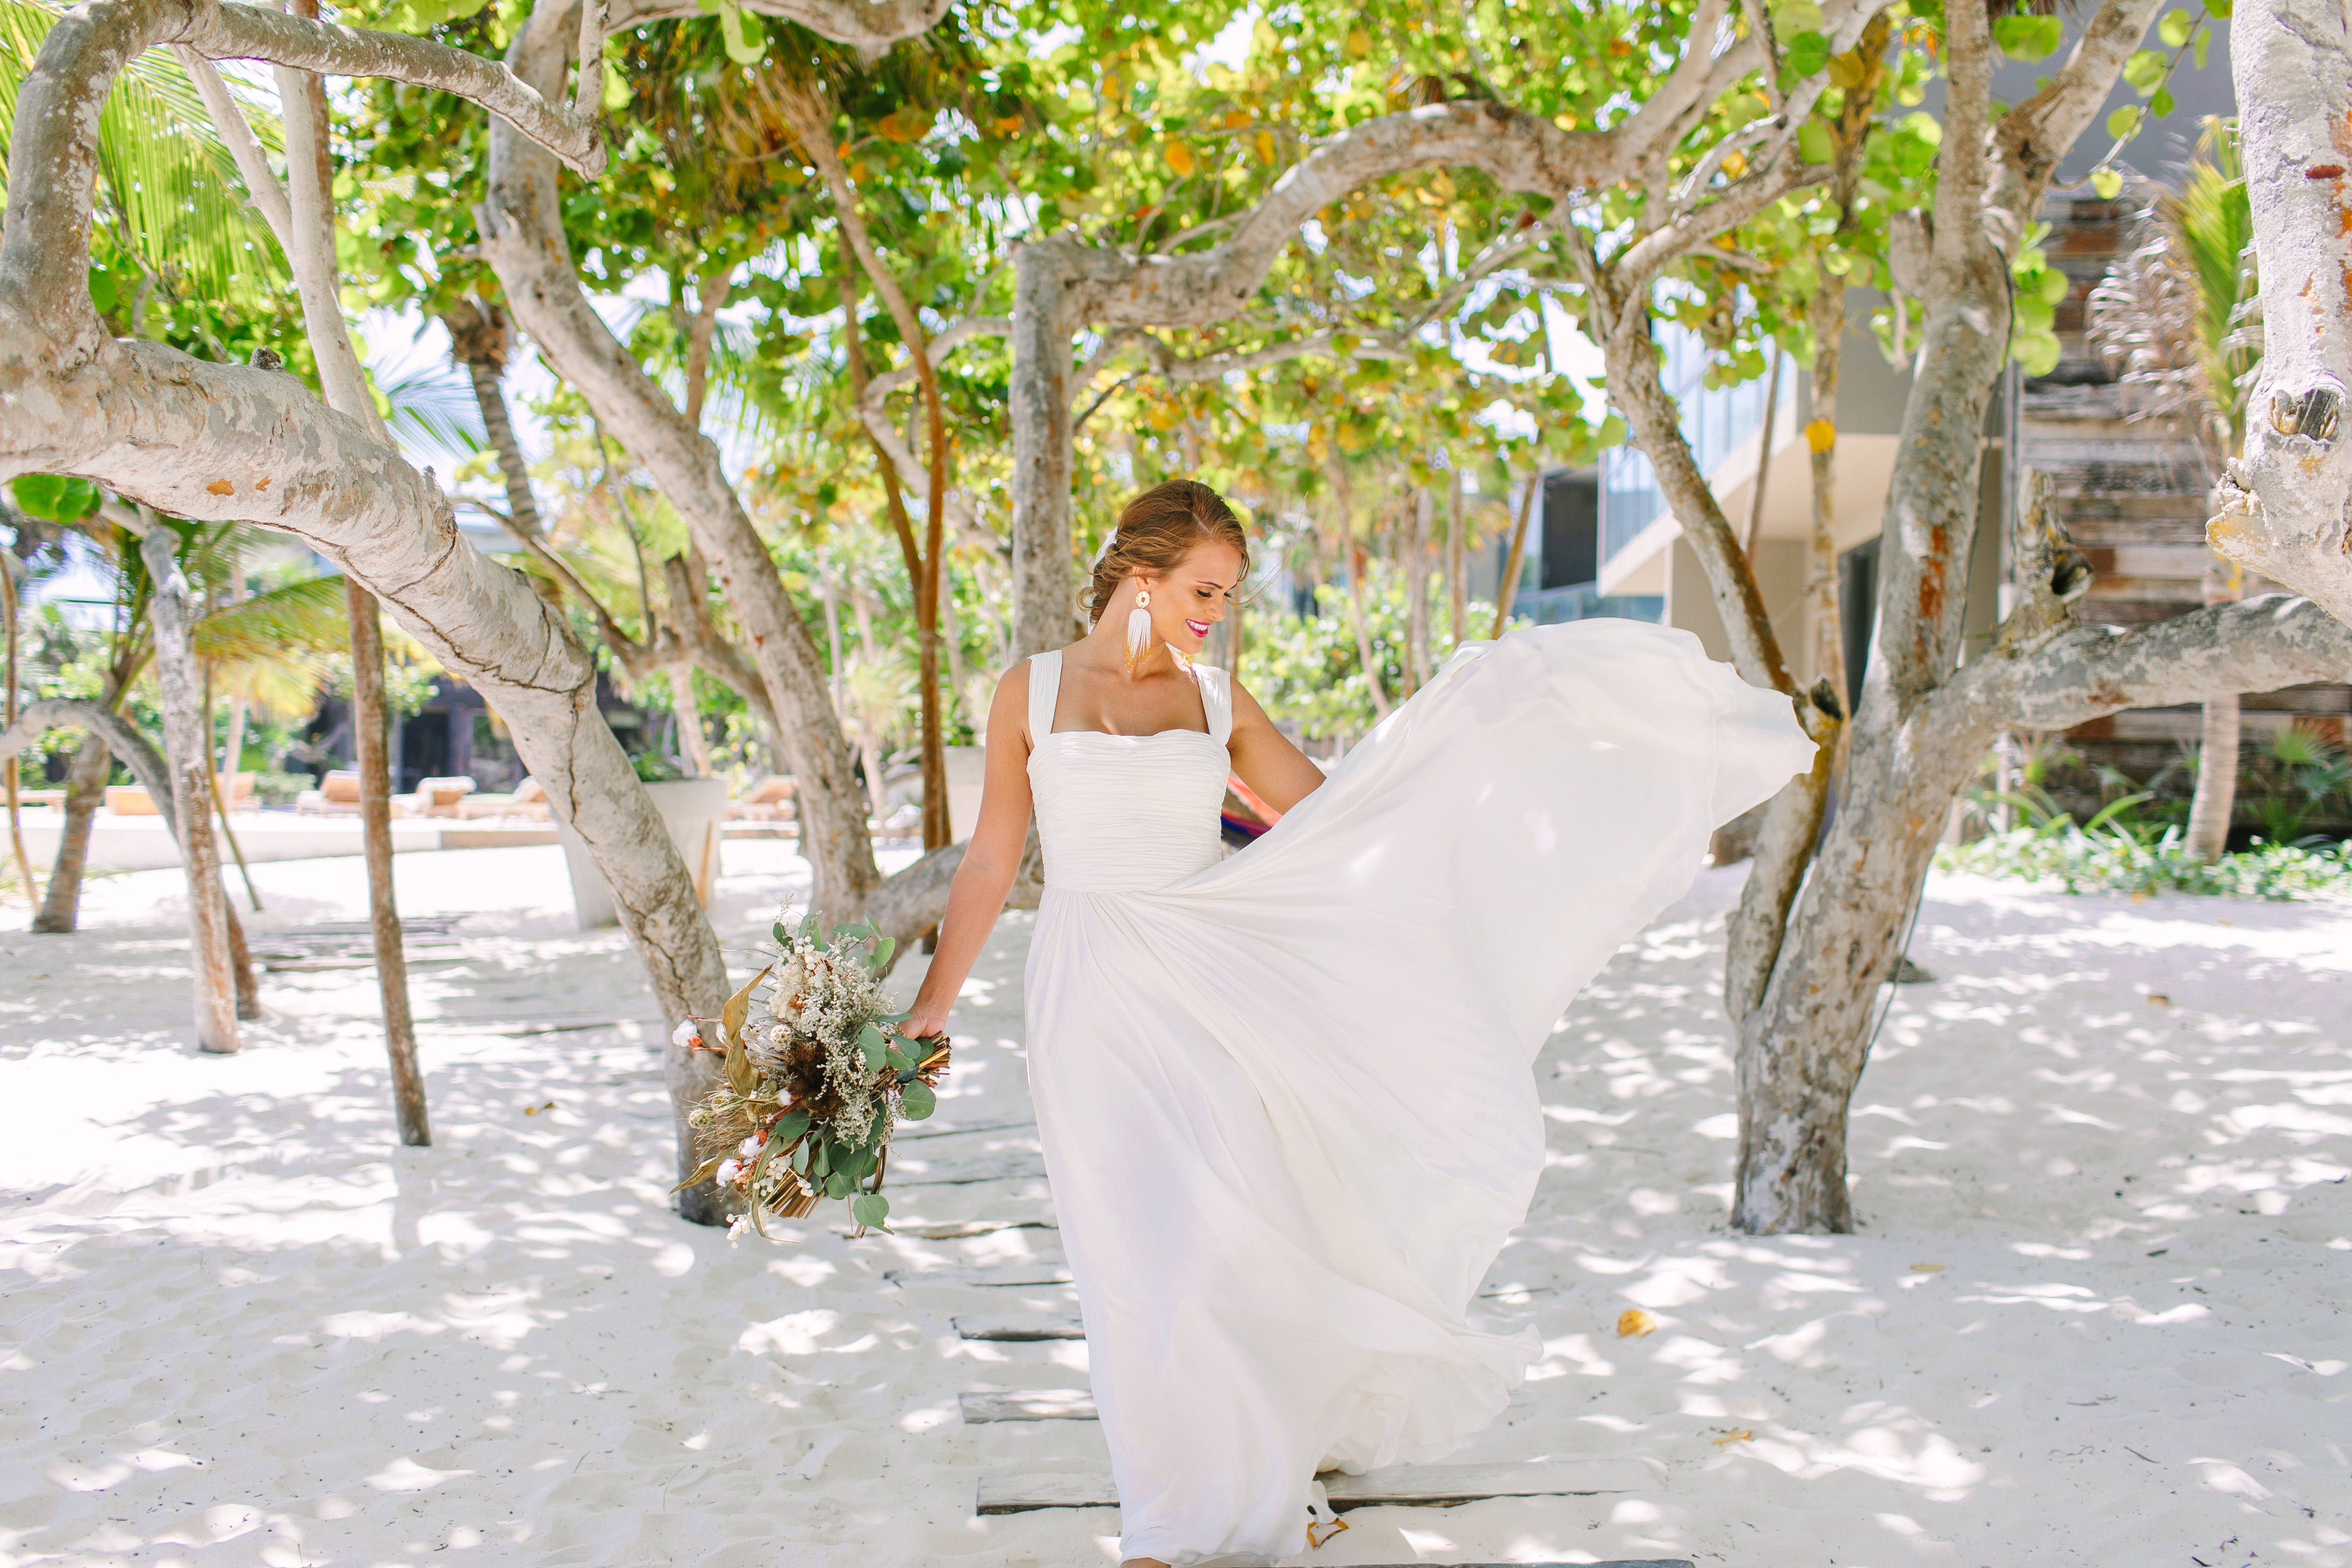 Tulum Weddings Are Unbelievably Romantic—Here's Proof: We took Kleinfeld Bridal wedding dresses and Kleinfeld Bridal Party bridesmaids dresses to Tulum, Mexico for a fun photoshoot on the beach full of flowers, sun, sand and fun!